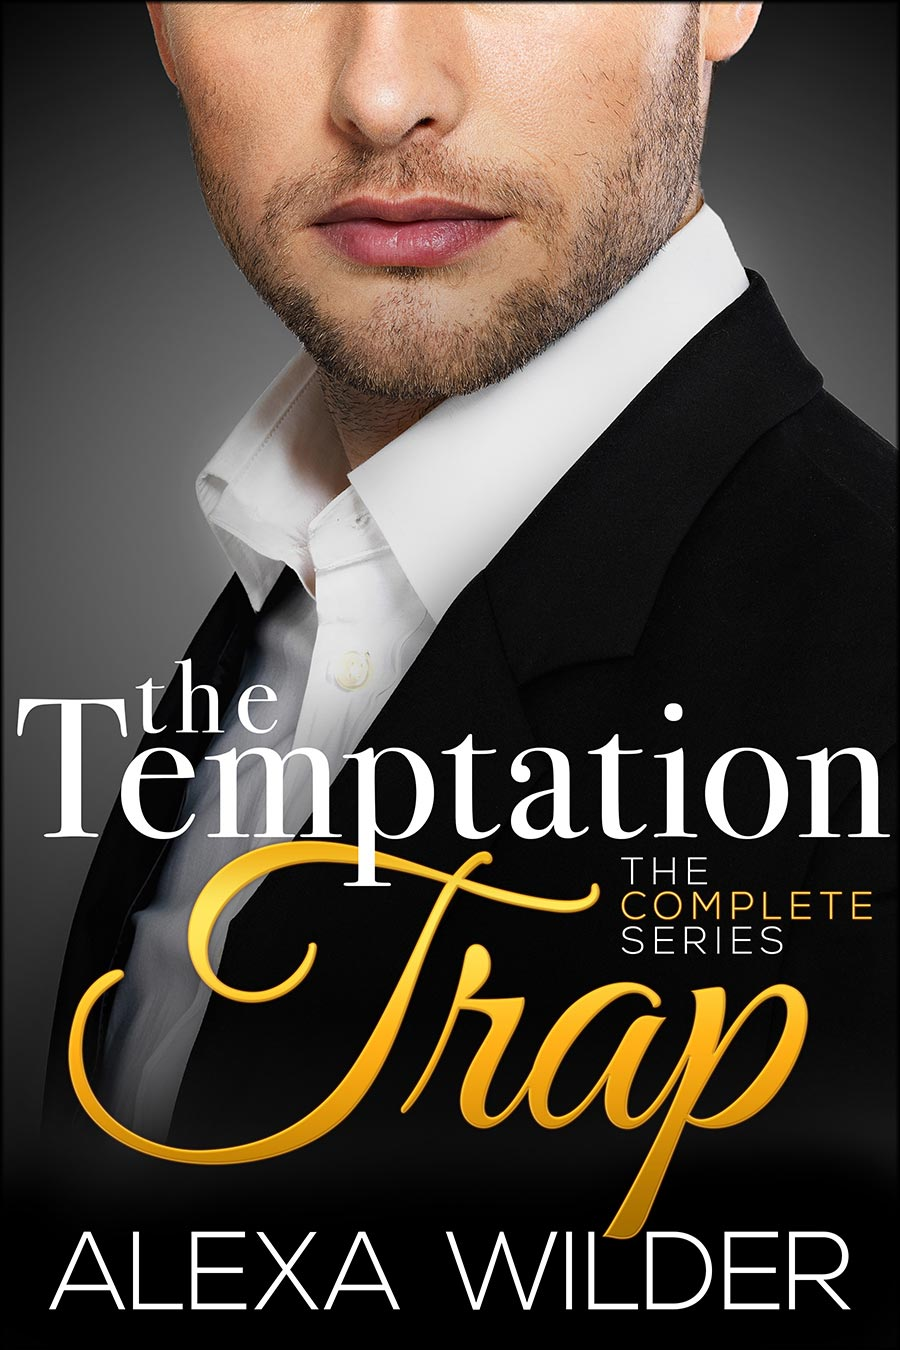 The-Temptation-Trap---450-dpi.jpg